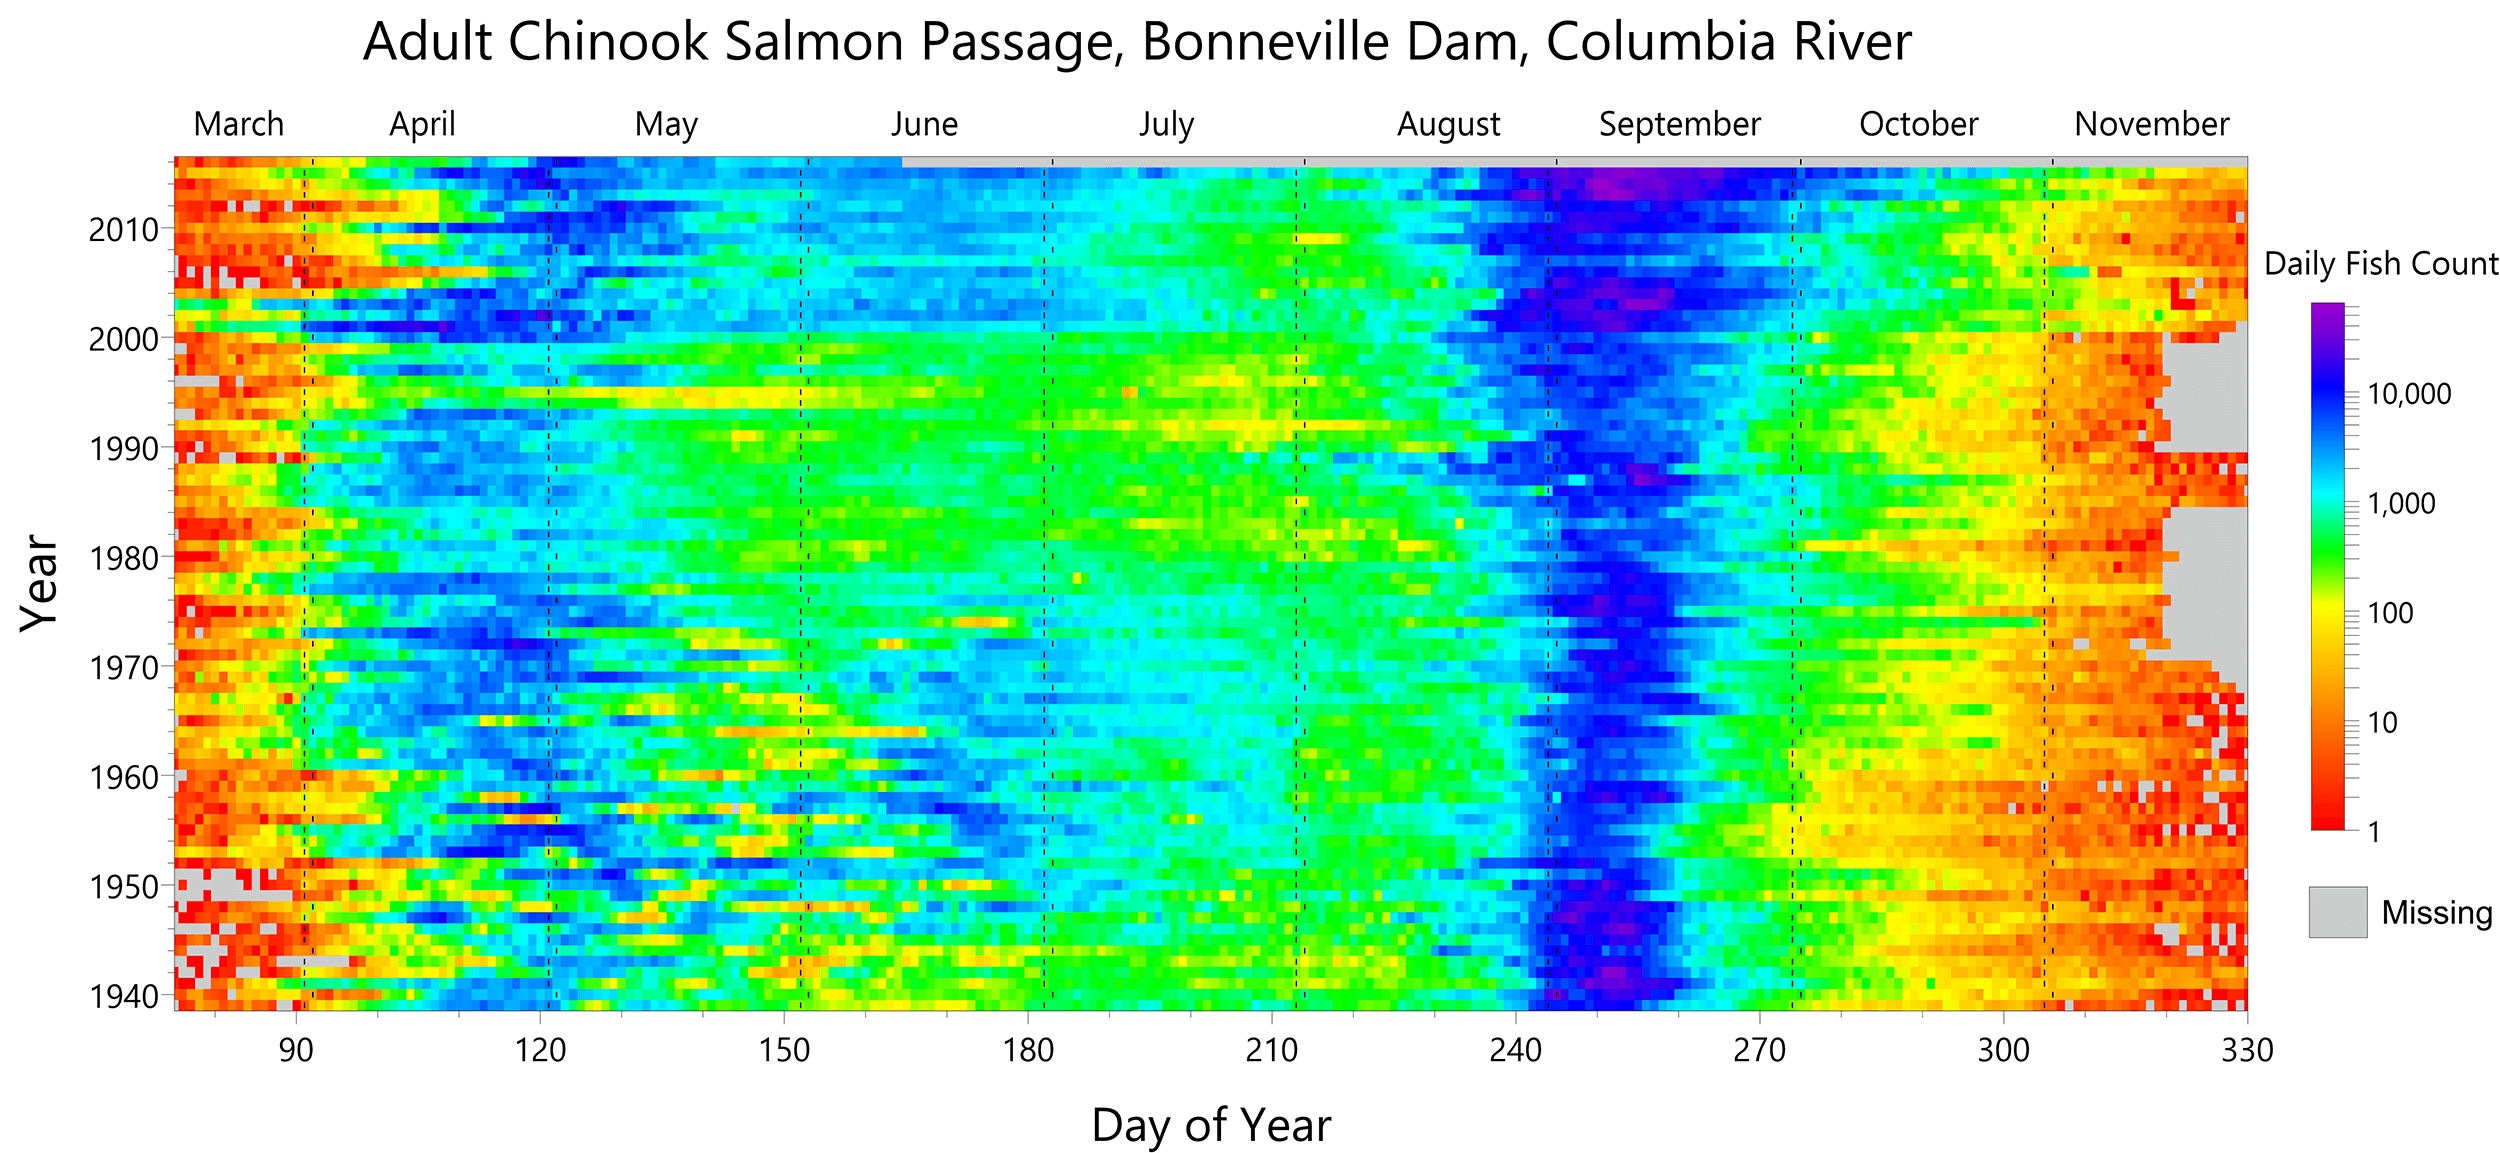 Surfer 2D & 3D modeling and analysis software: Time map displaying day, year, and Chinook Salmon passage counts